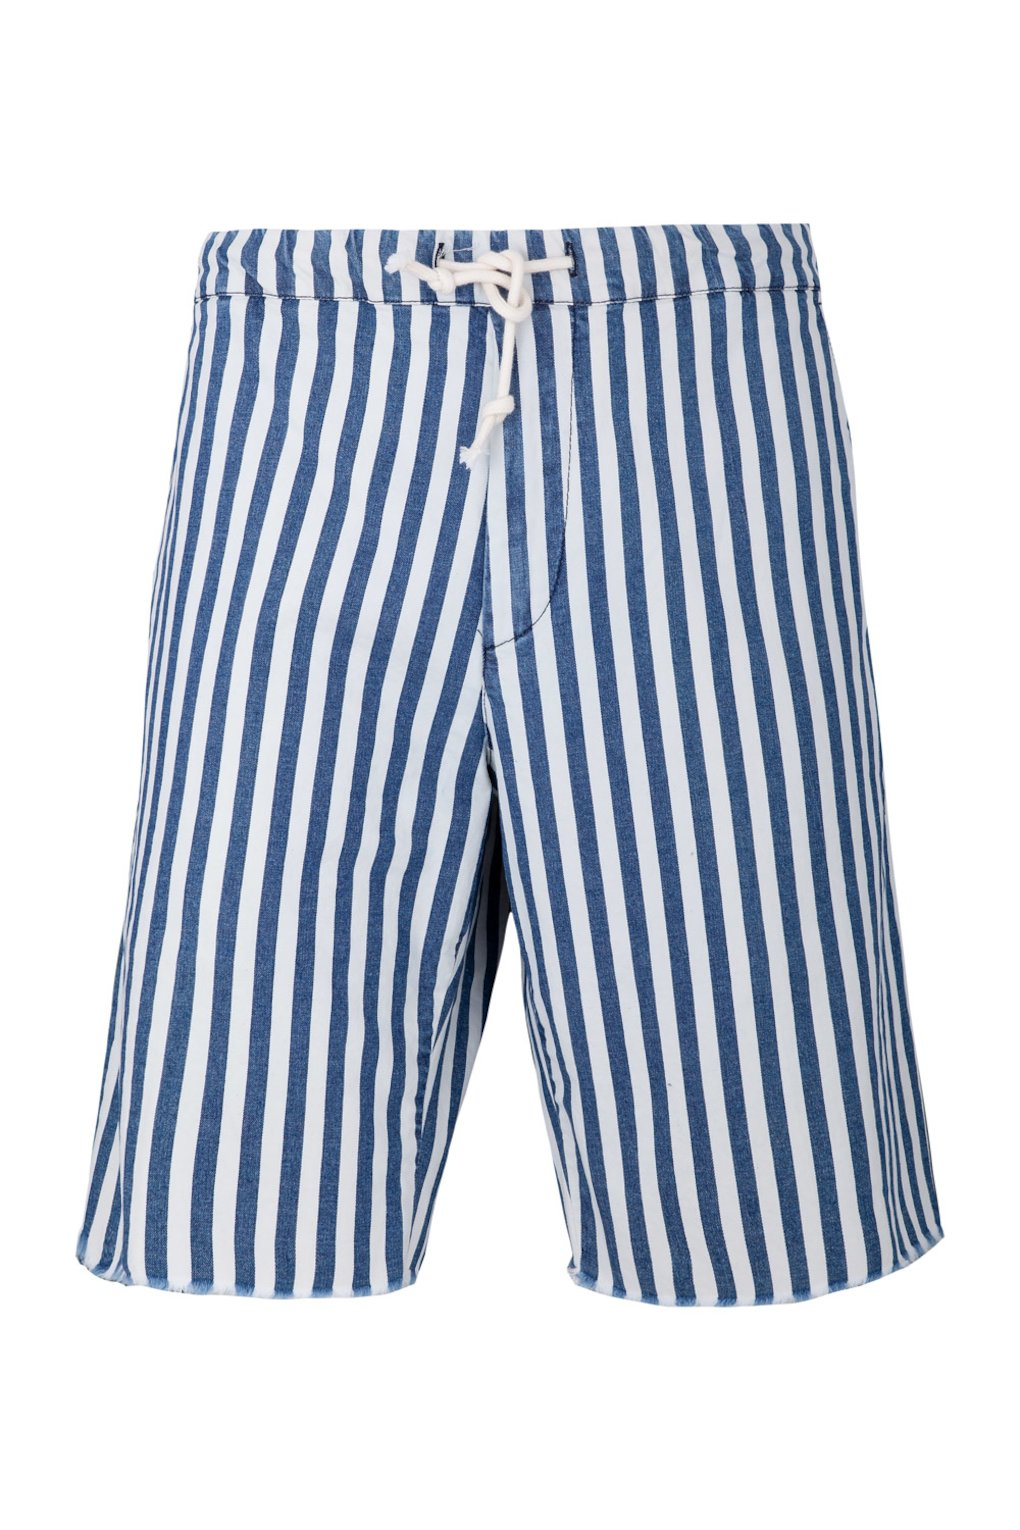 Man's Striped Shorts